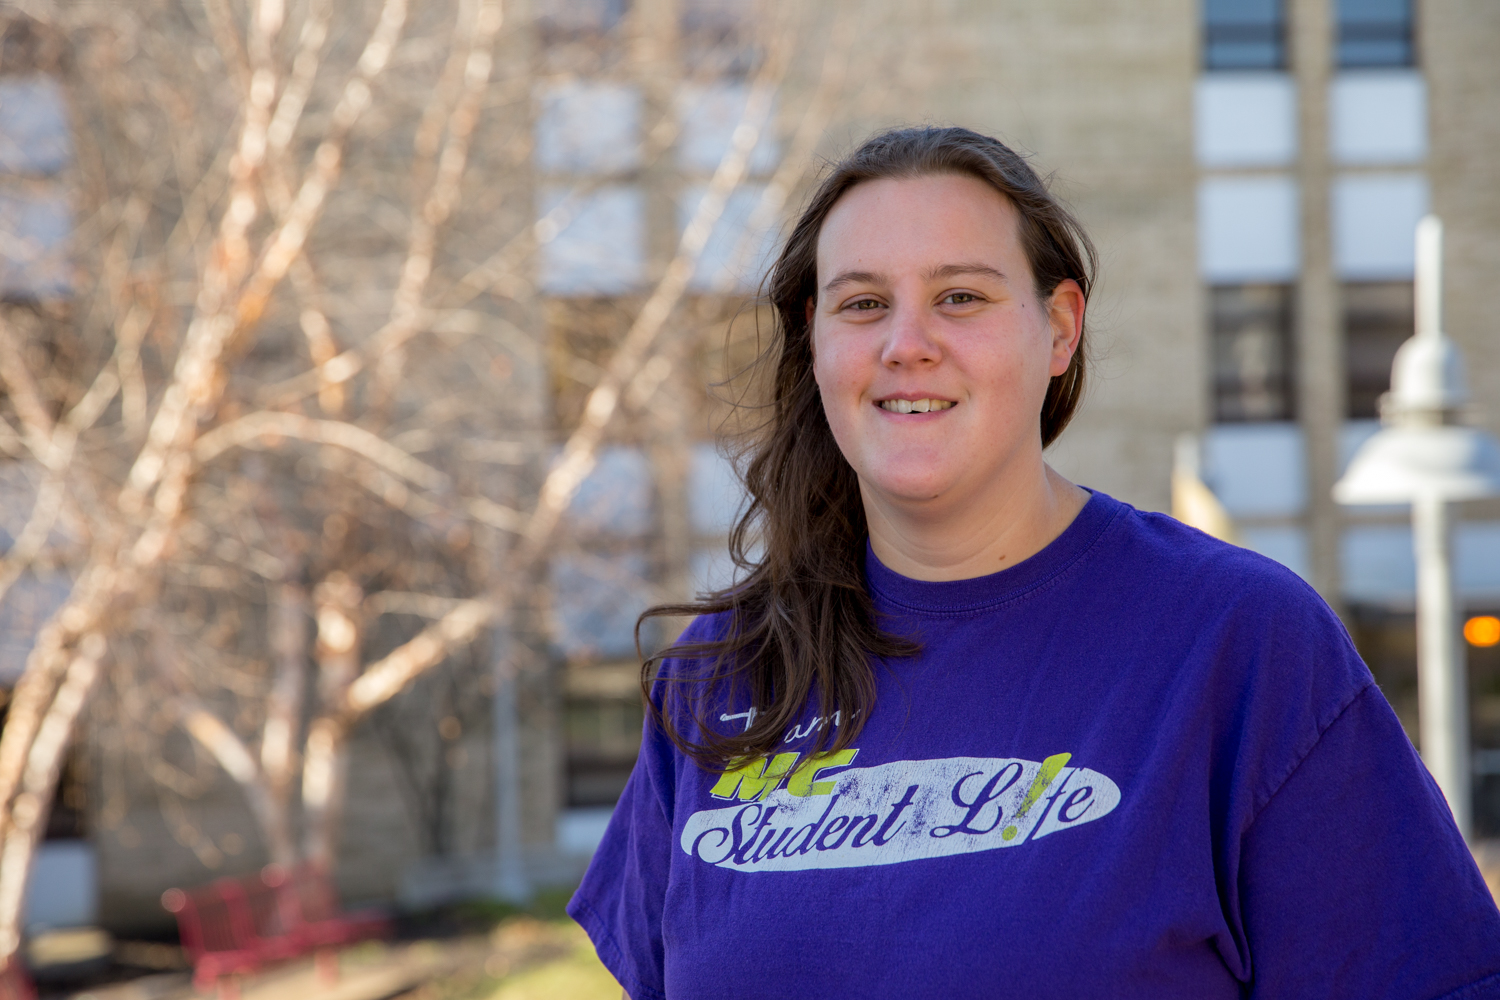 Constance volunteers with the Montgomery County Victim Assistance Program, a Montgomery County program (which operates out of the Health and Human Services Department) and assists victims of rape, sexual assault and domestic violence. (Courtesy Fritzi Bodenheimer)